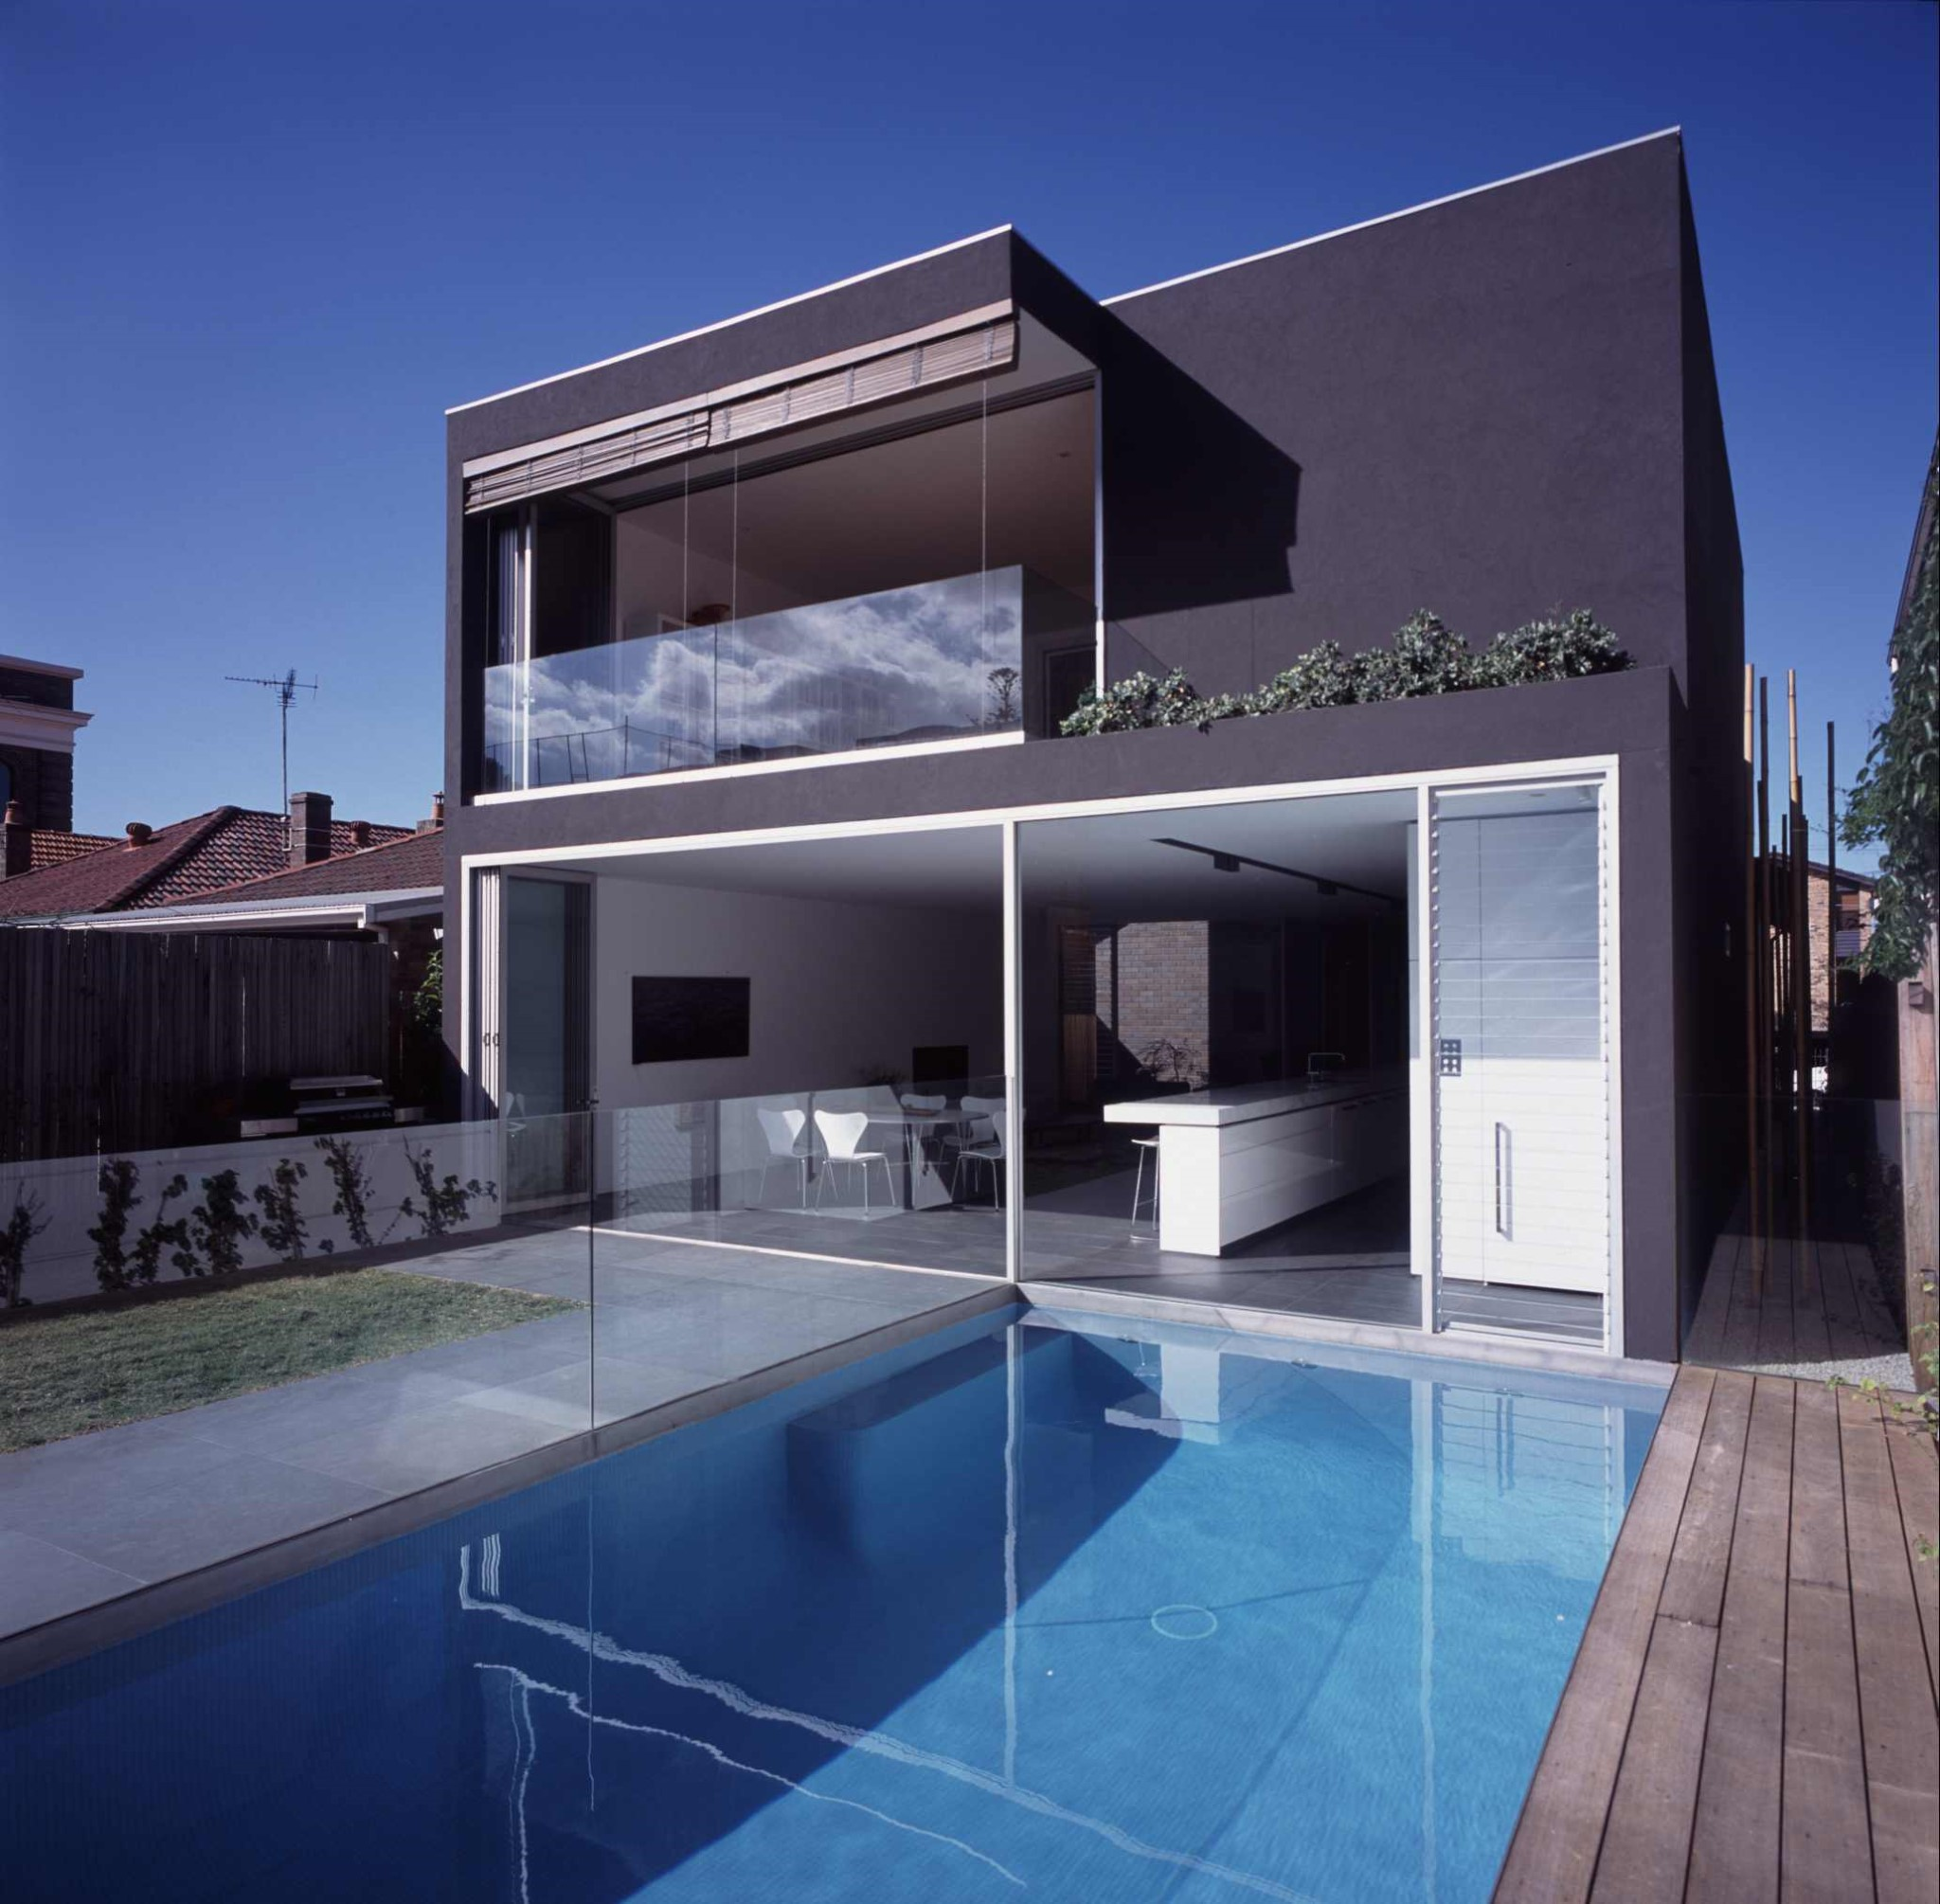 Fully Tiled Glass mosaic pool with Stone, Timber Deck in Kensington